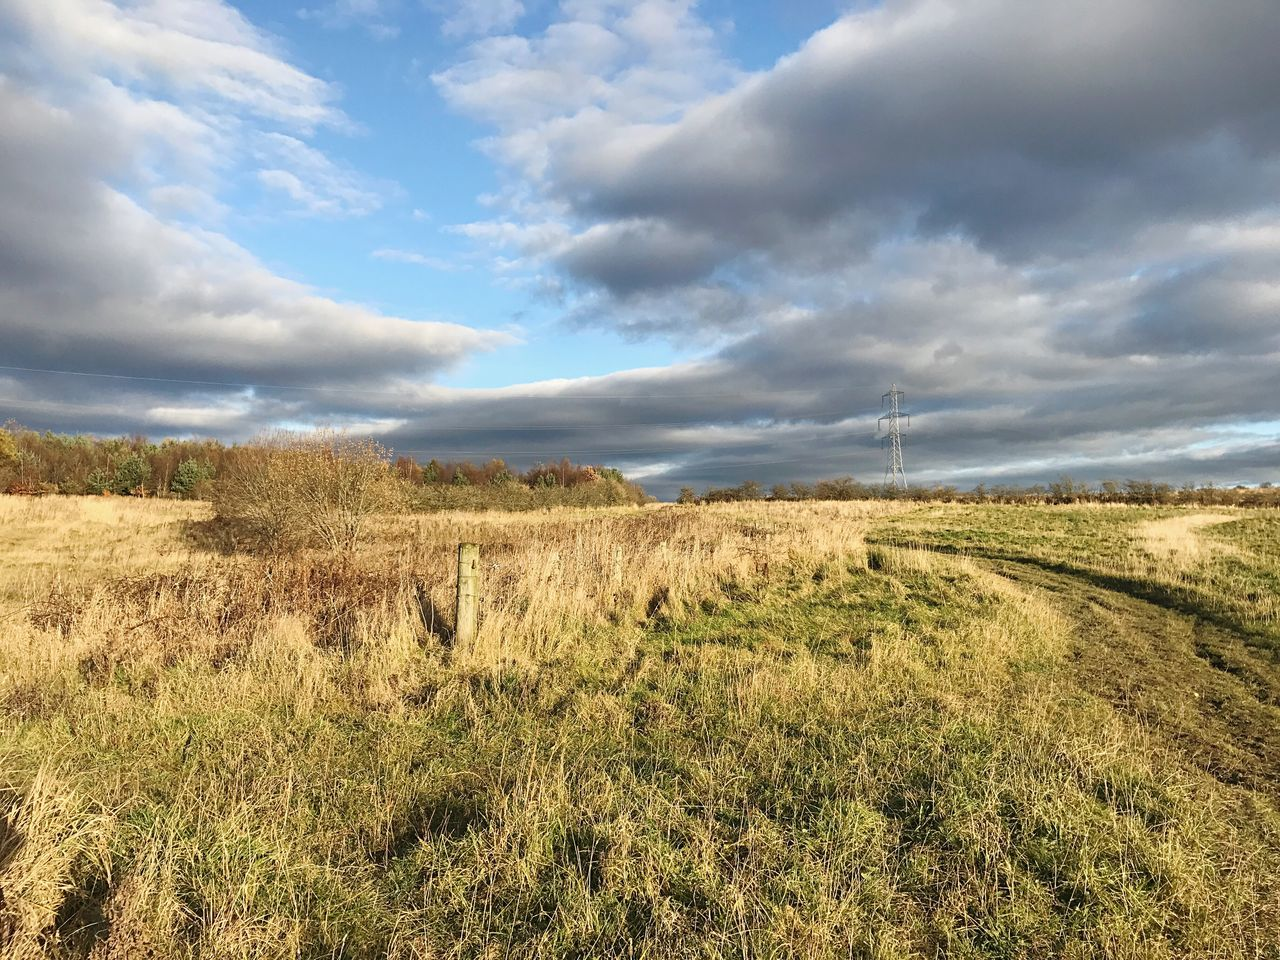 field, landscape, cloud - sky, sky, tranquil scene, nature, grass, tranquility, beauty in nature, scenics, day, no people, outdoors, growth